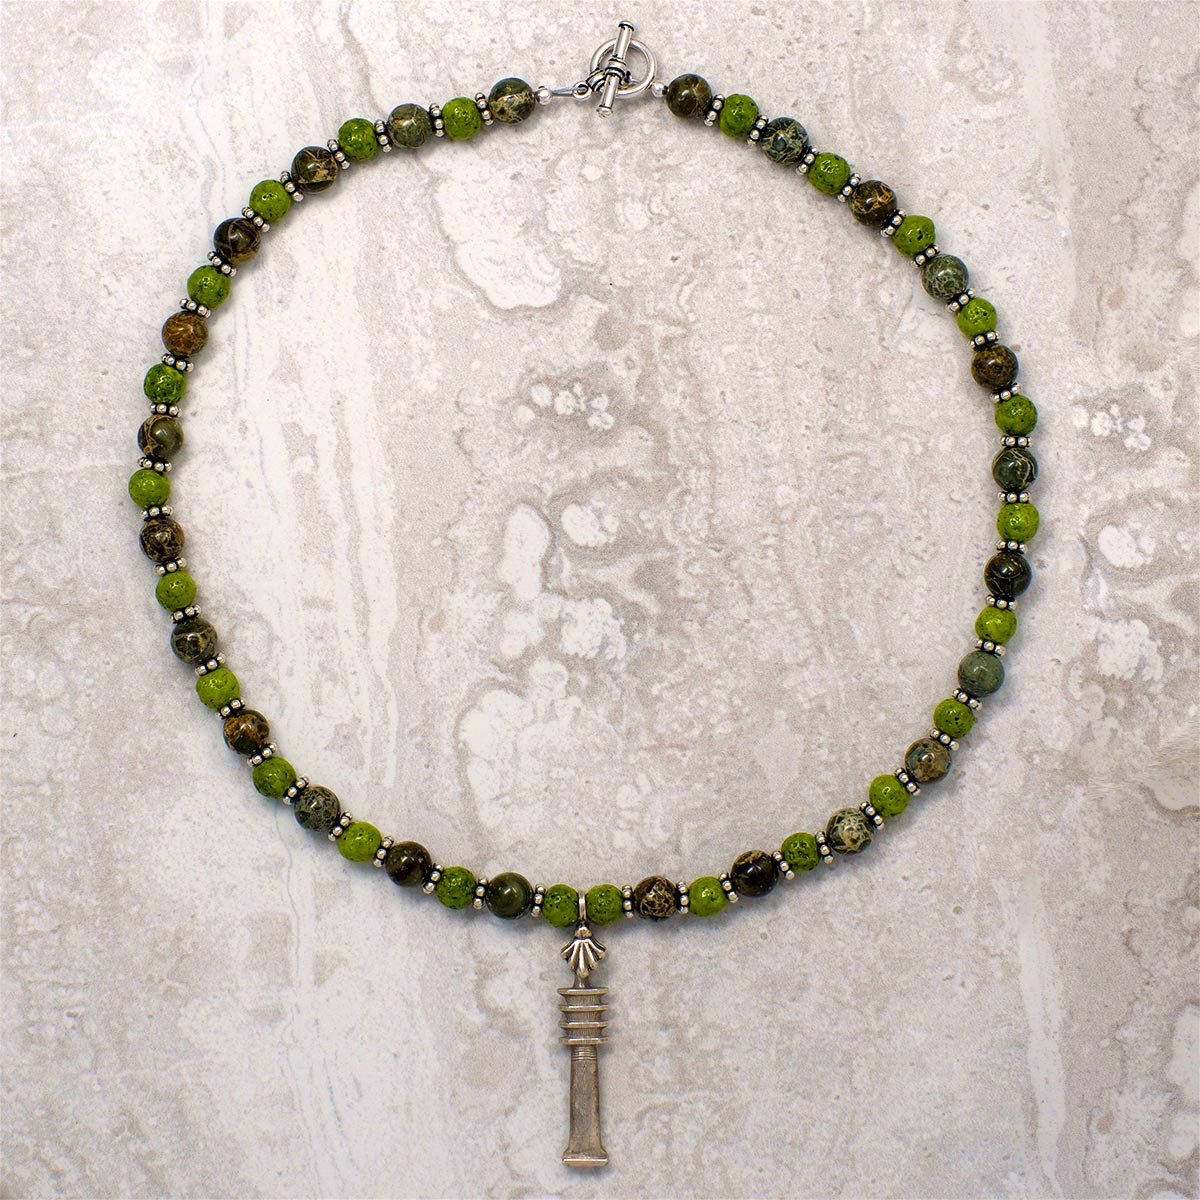 Men's Necklace in Nile Green Faience with Green Brecciated Jasper - Em Hotep Collection